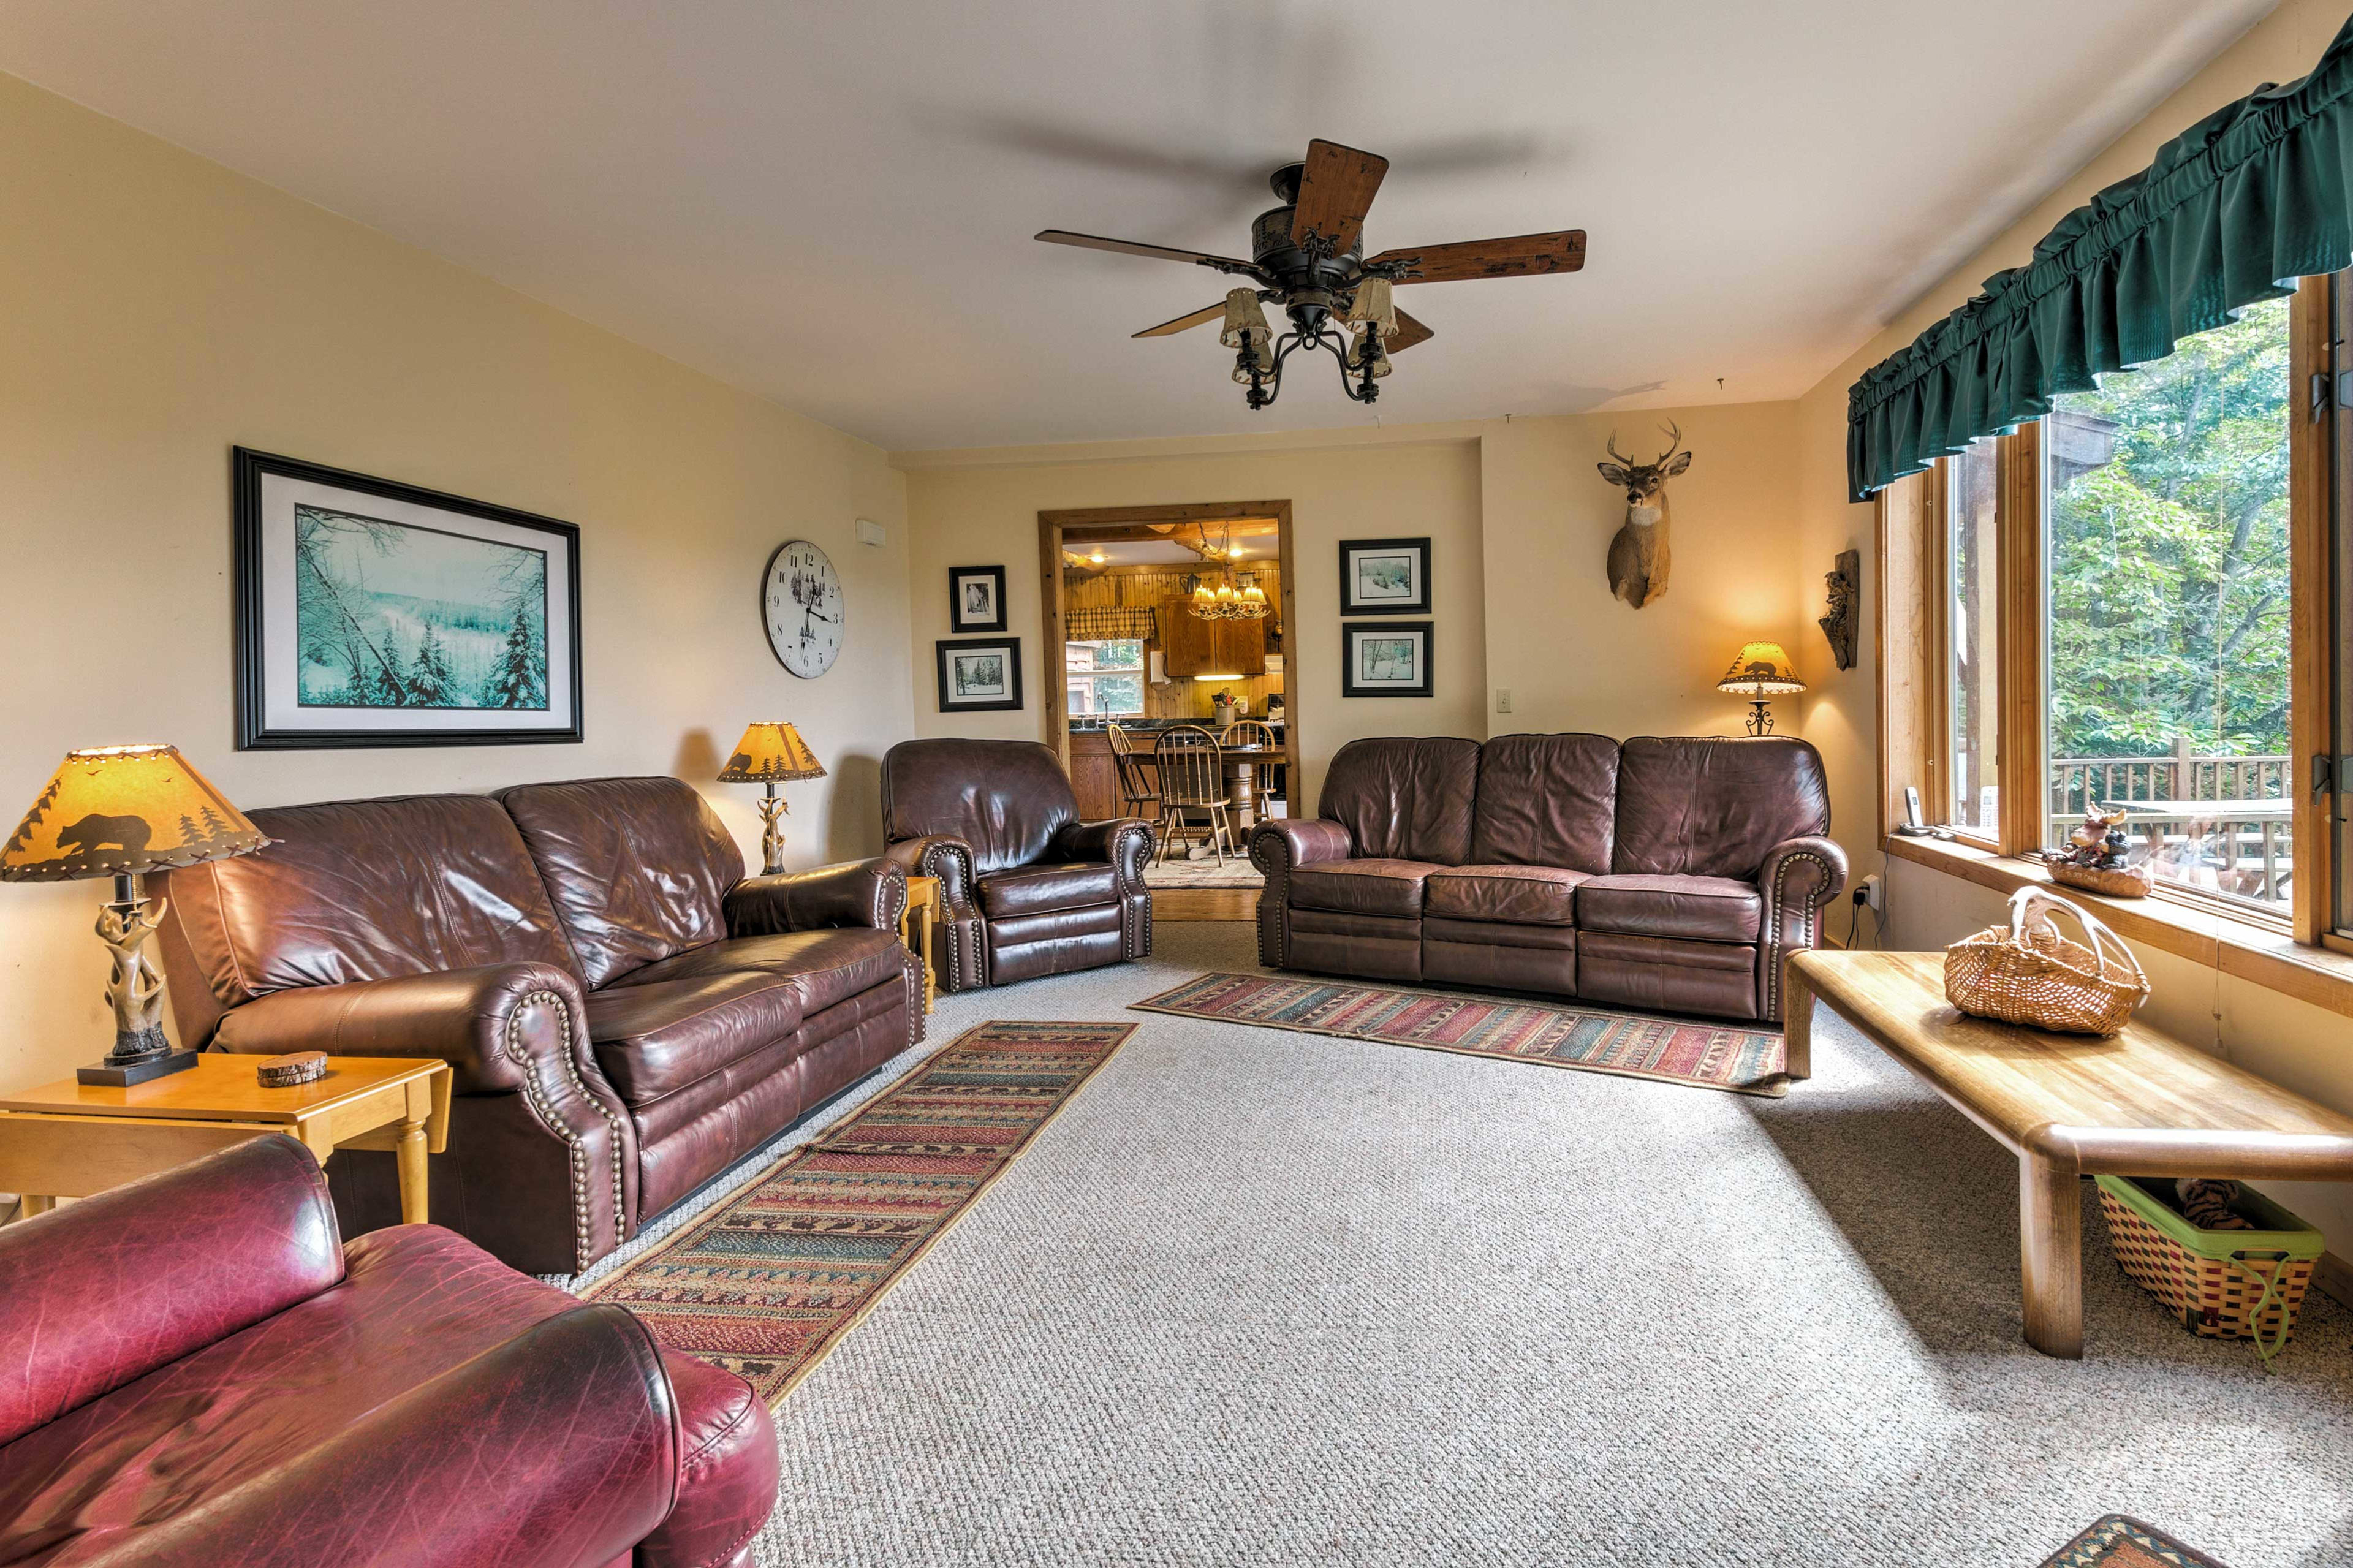 Relax with your loved ones in the living room.